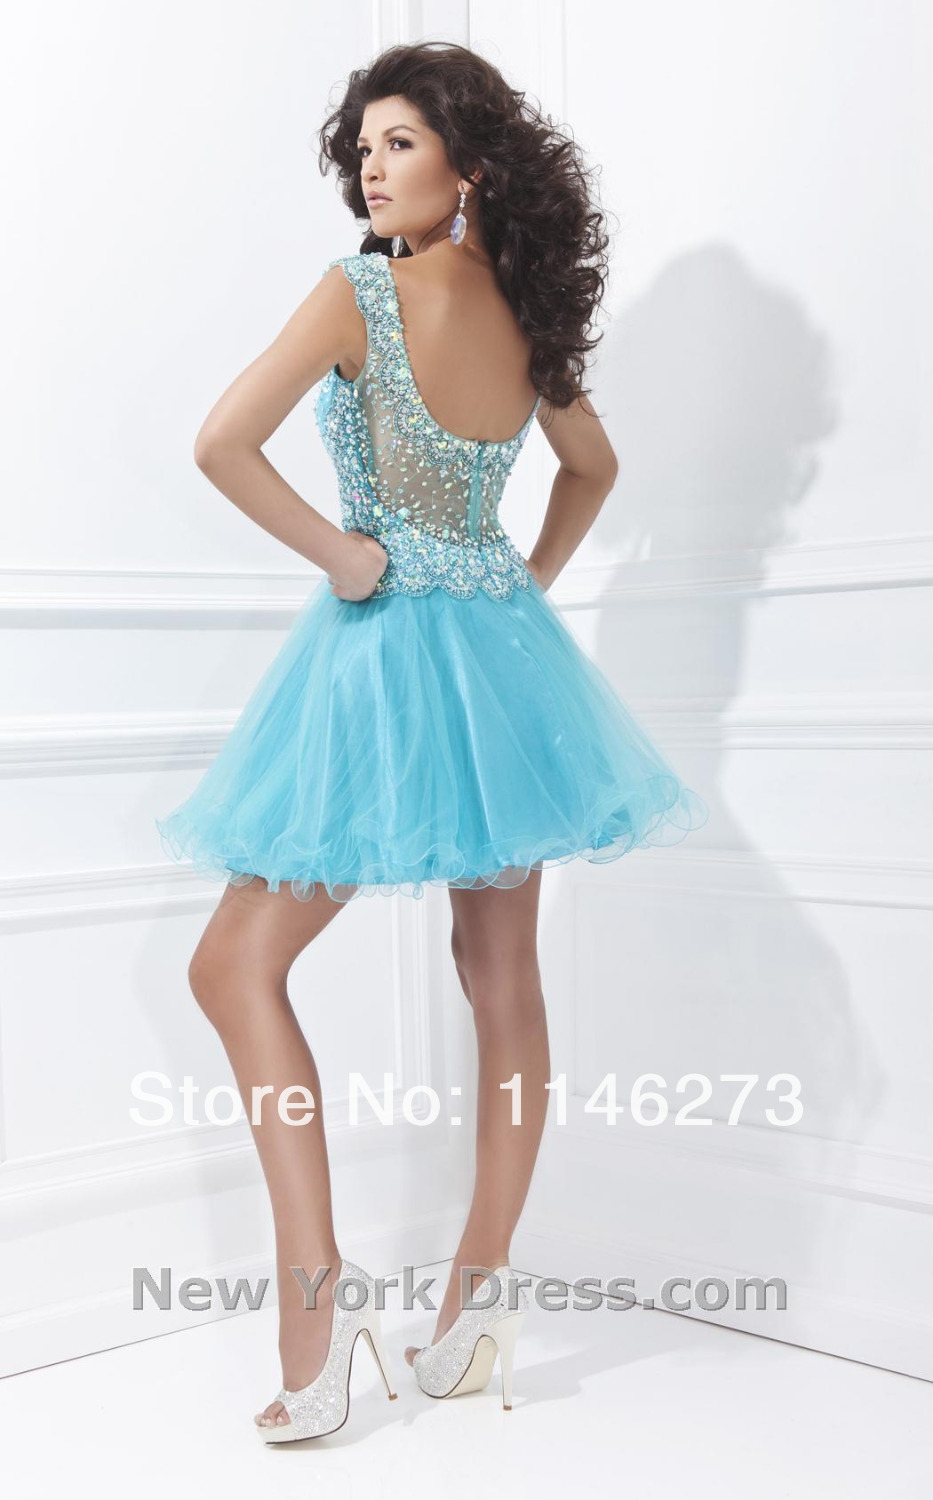 Prom Night Dresses Design Your Own Dress Ghetto Sexy Short A Line ...